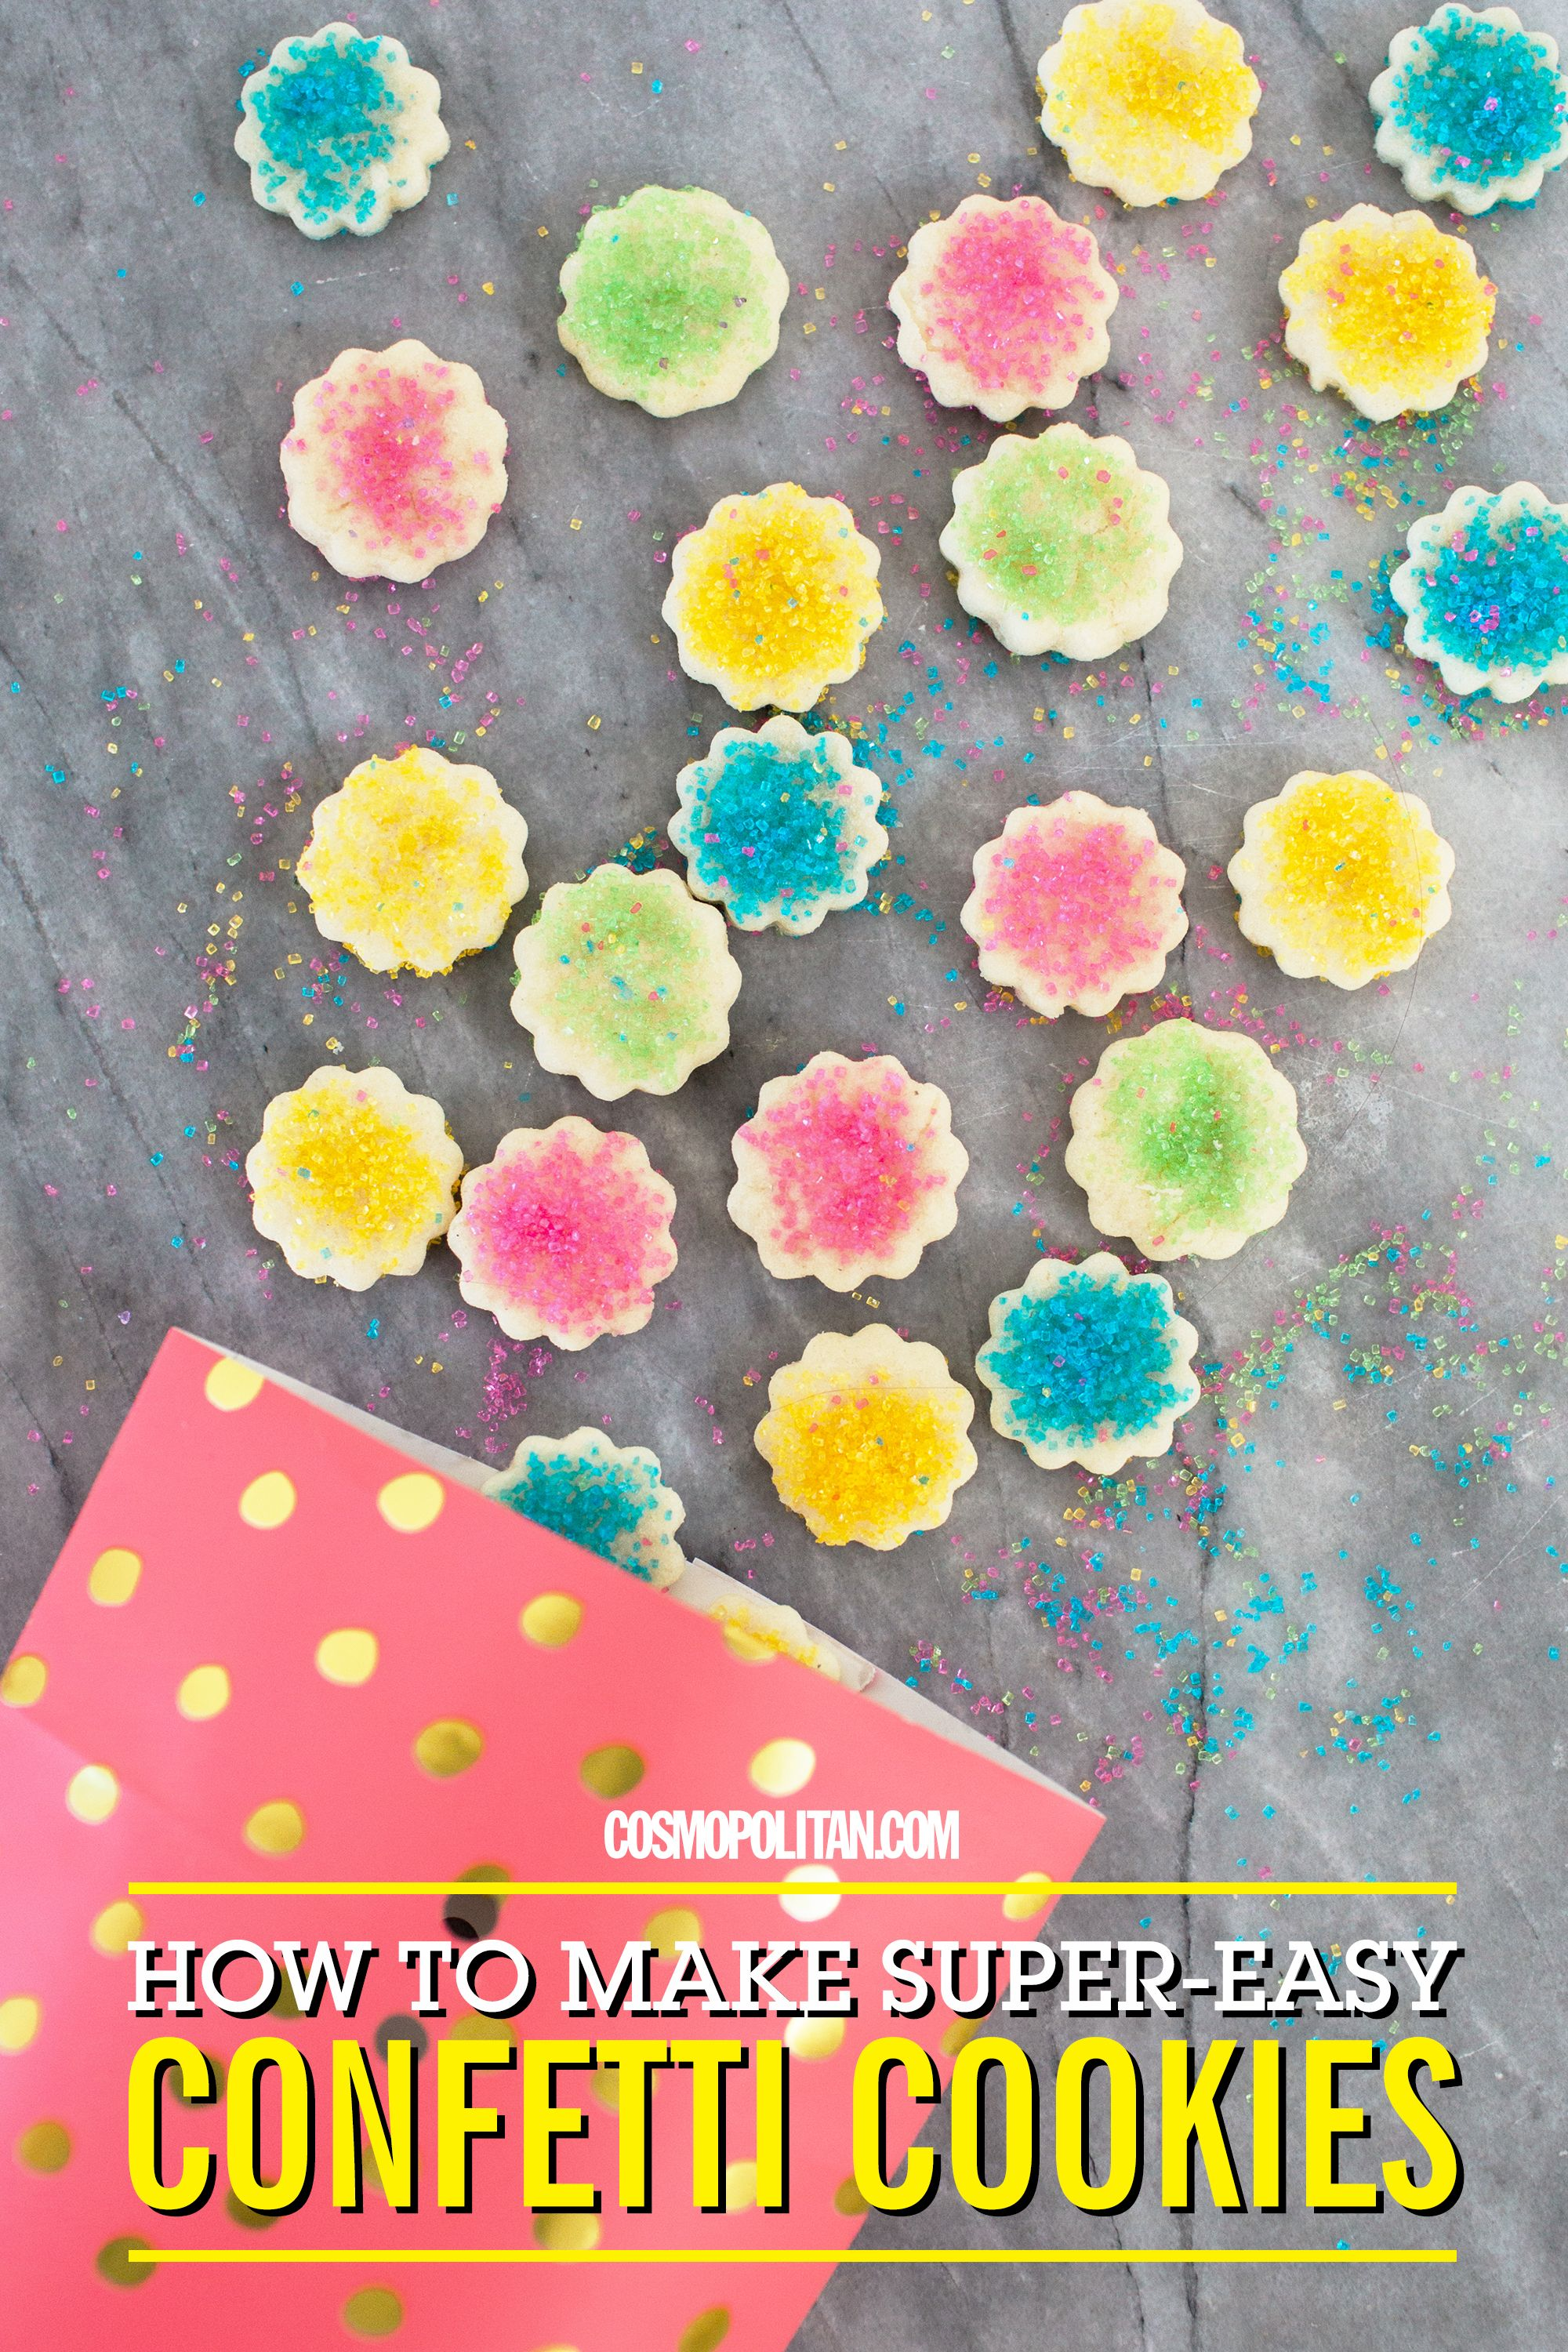 These DIY Confetti Cookies Are So Cute You'll Win the Holidays